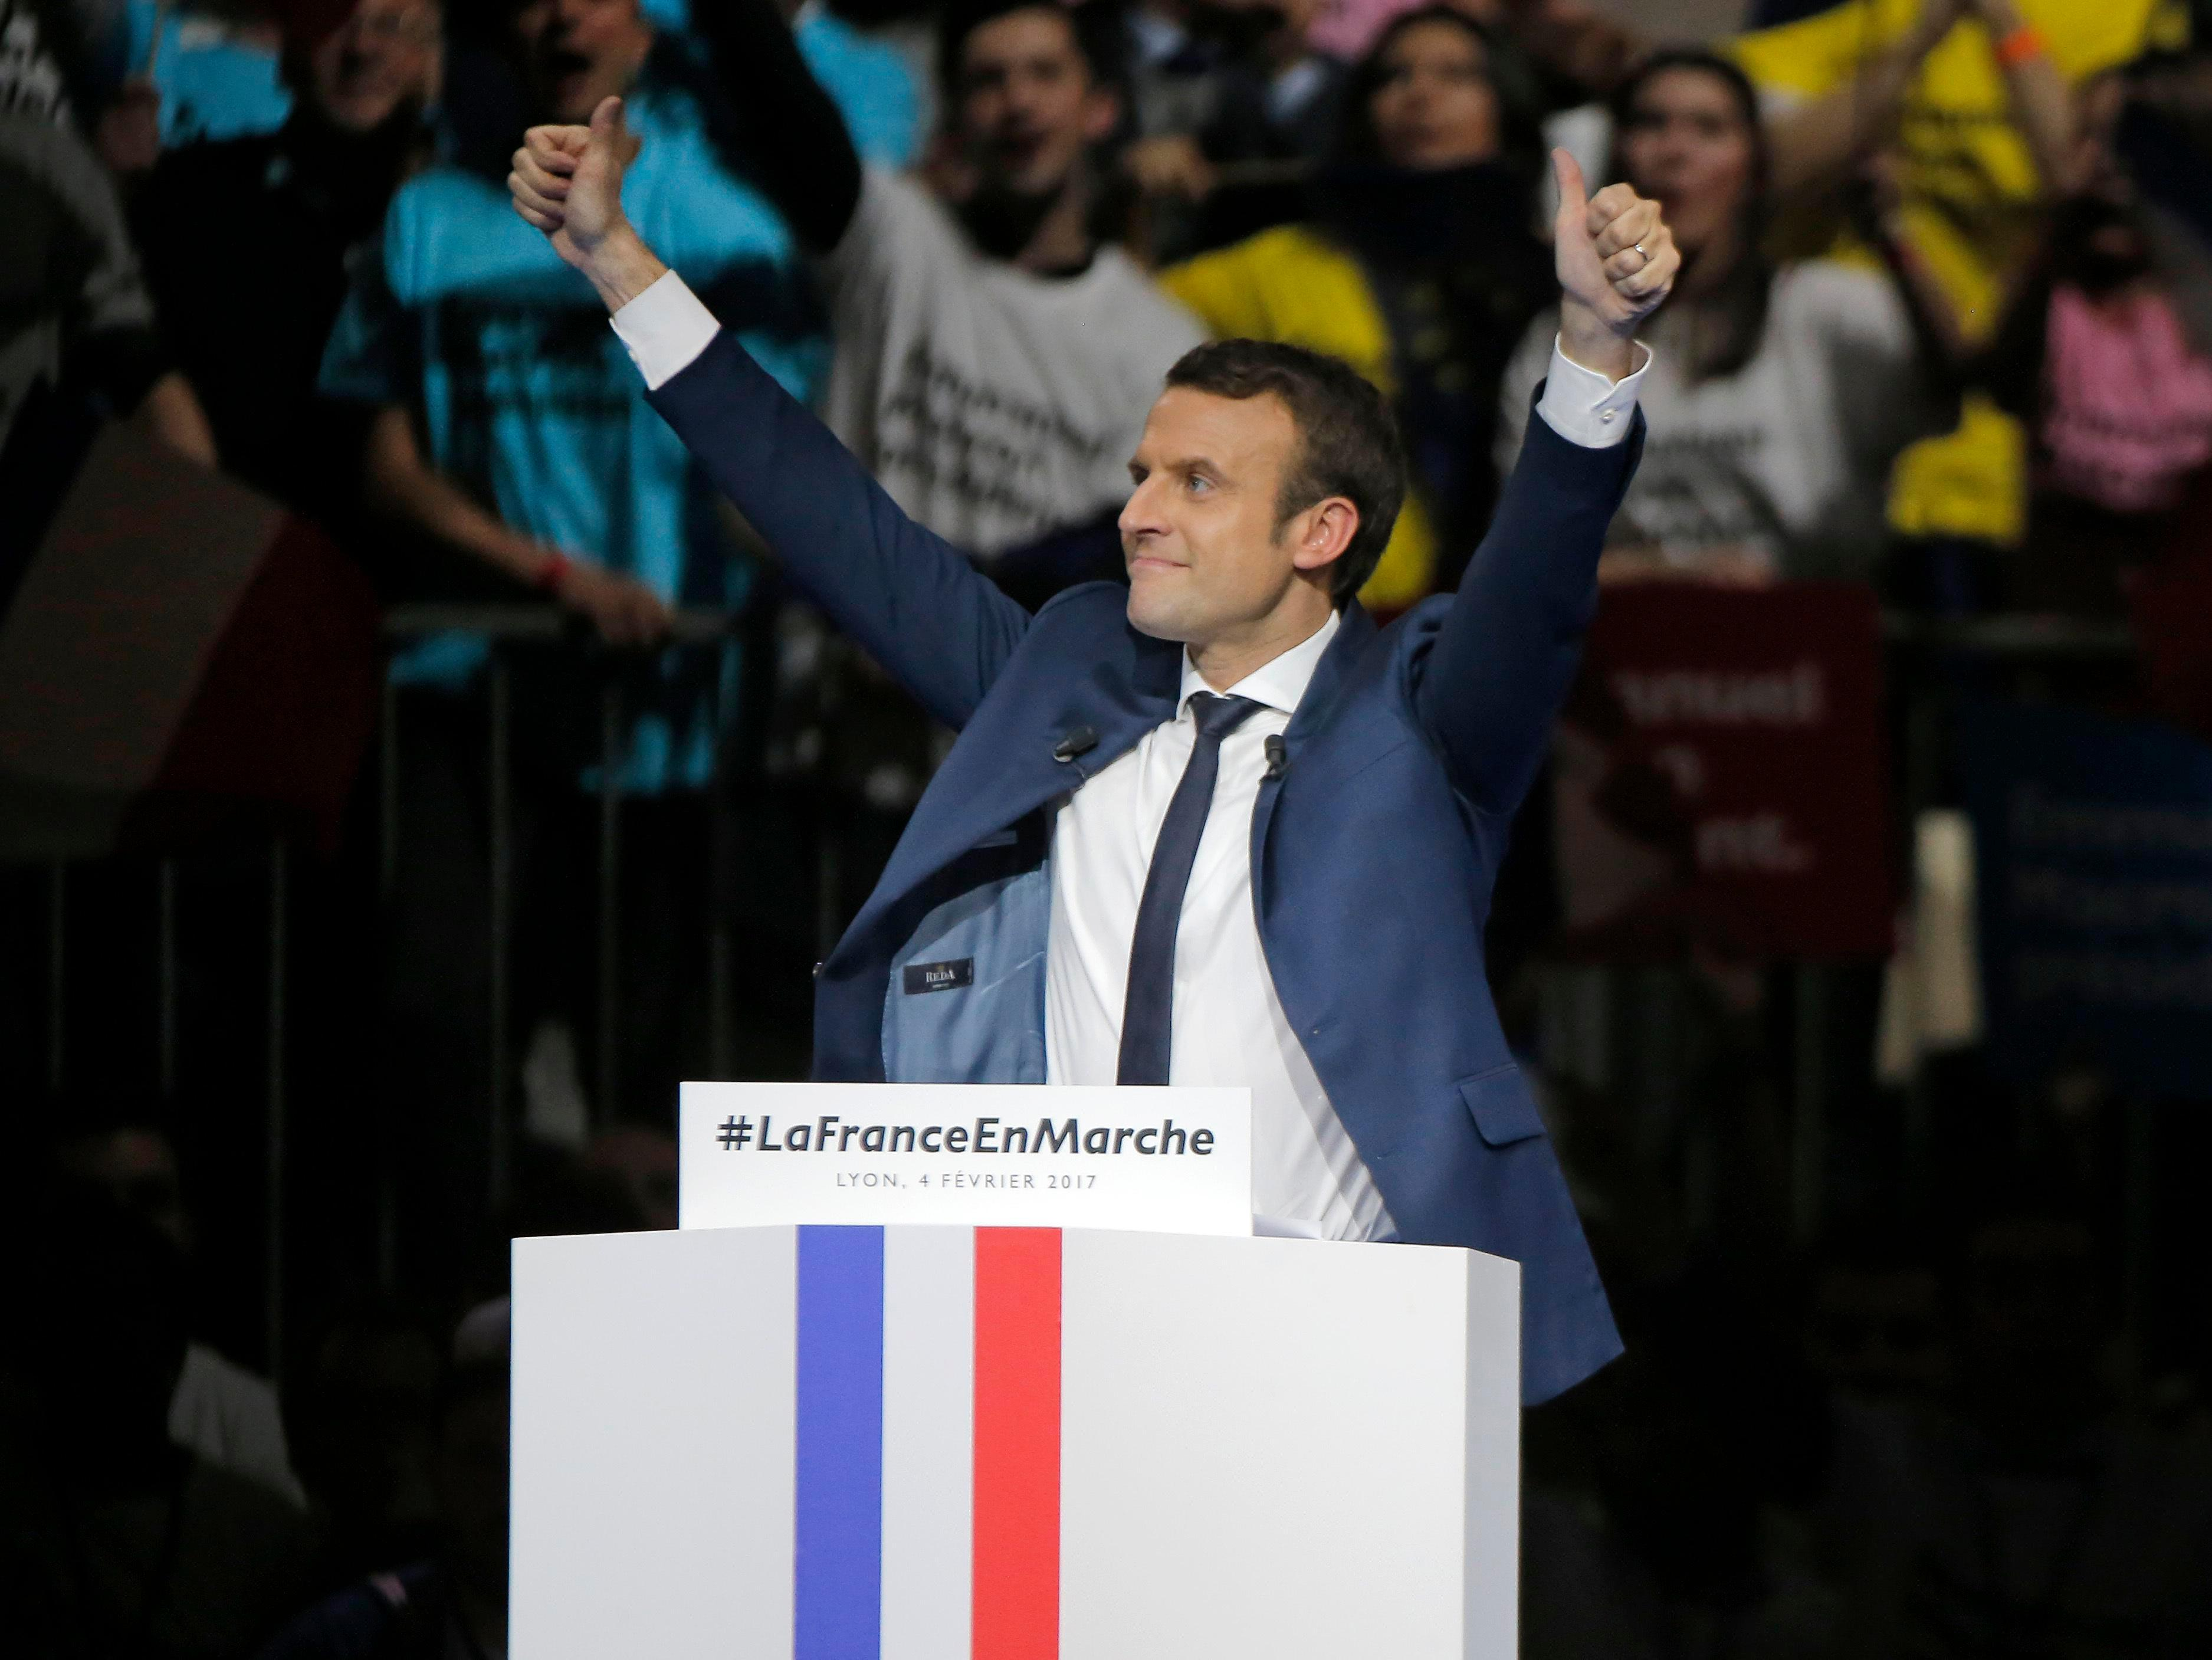 France- Macron's Victory in France